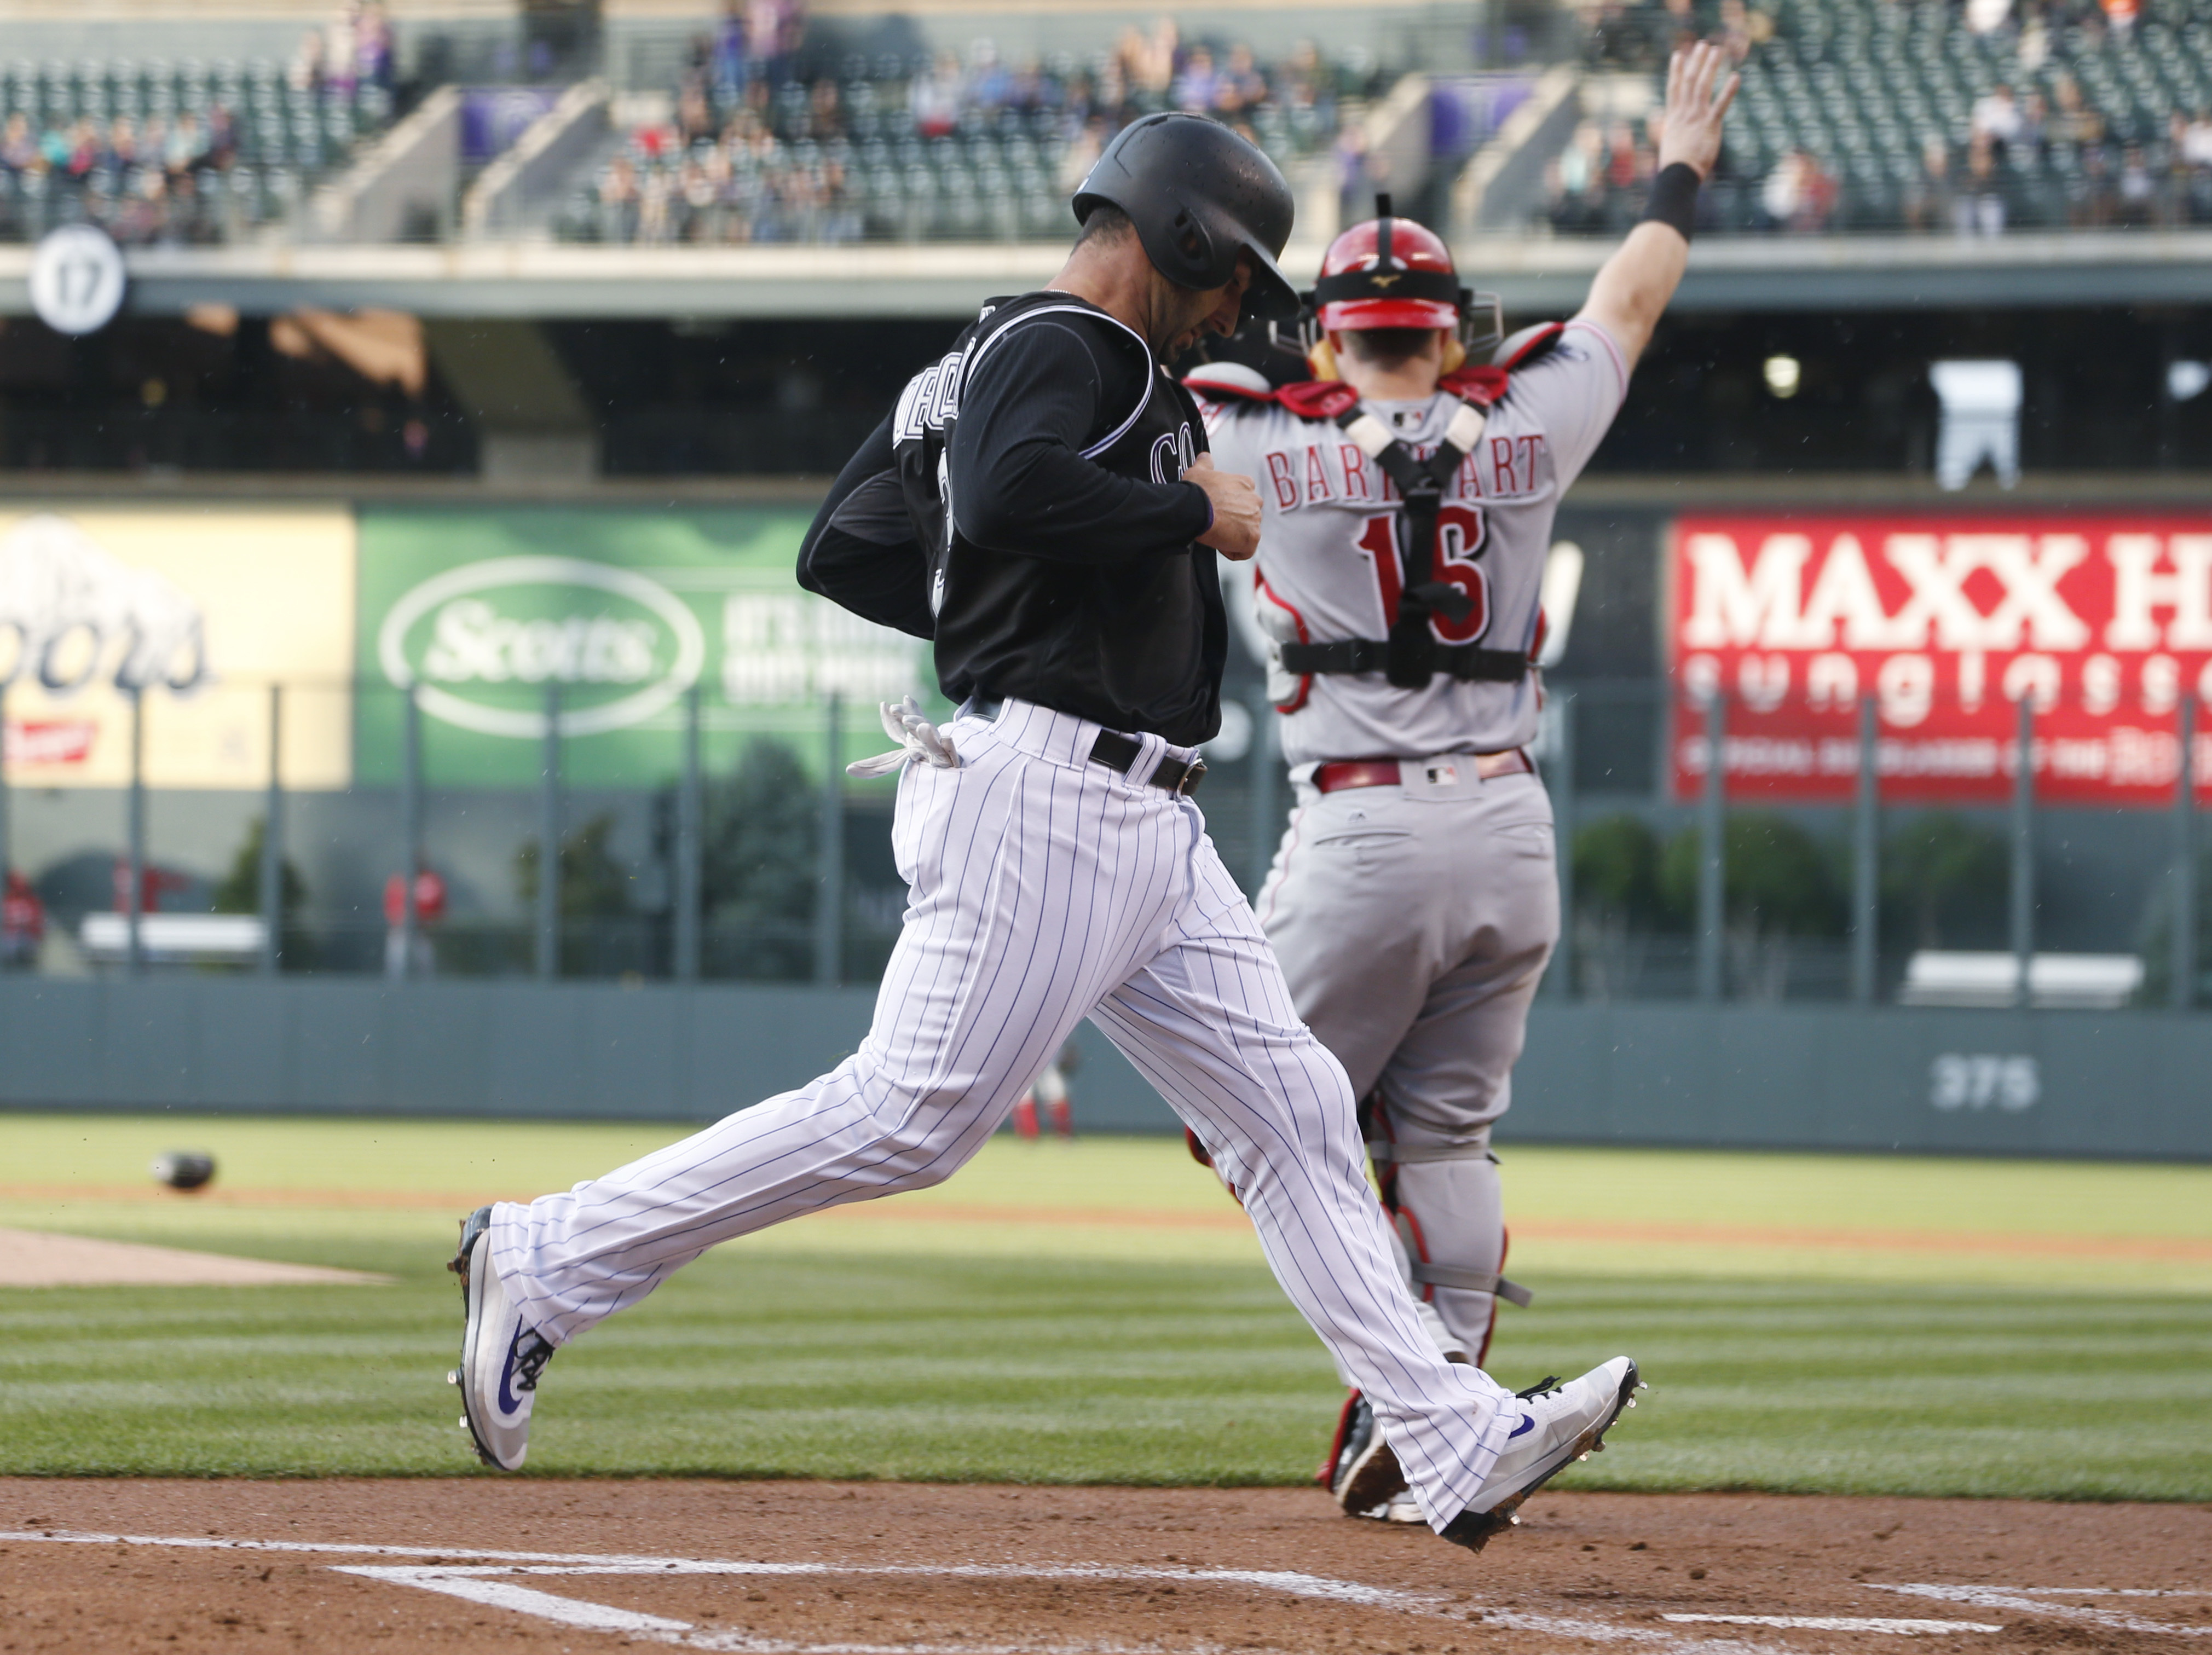 Colorado Rockies' Daniel Descalso, scores on a double by Tony Wolters as Cincinnati Reds catcher Tucker Barnhart looks for the throw in the first inning of a baseball game Tuesday, May 31, 2016, in Denver. (AP Photo/David Zalubowski)